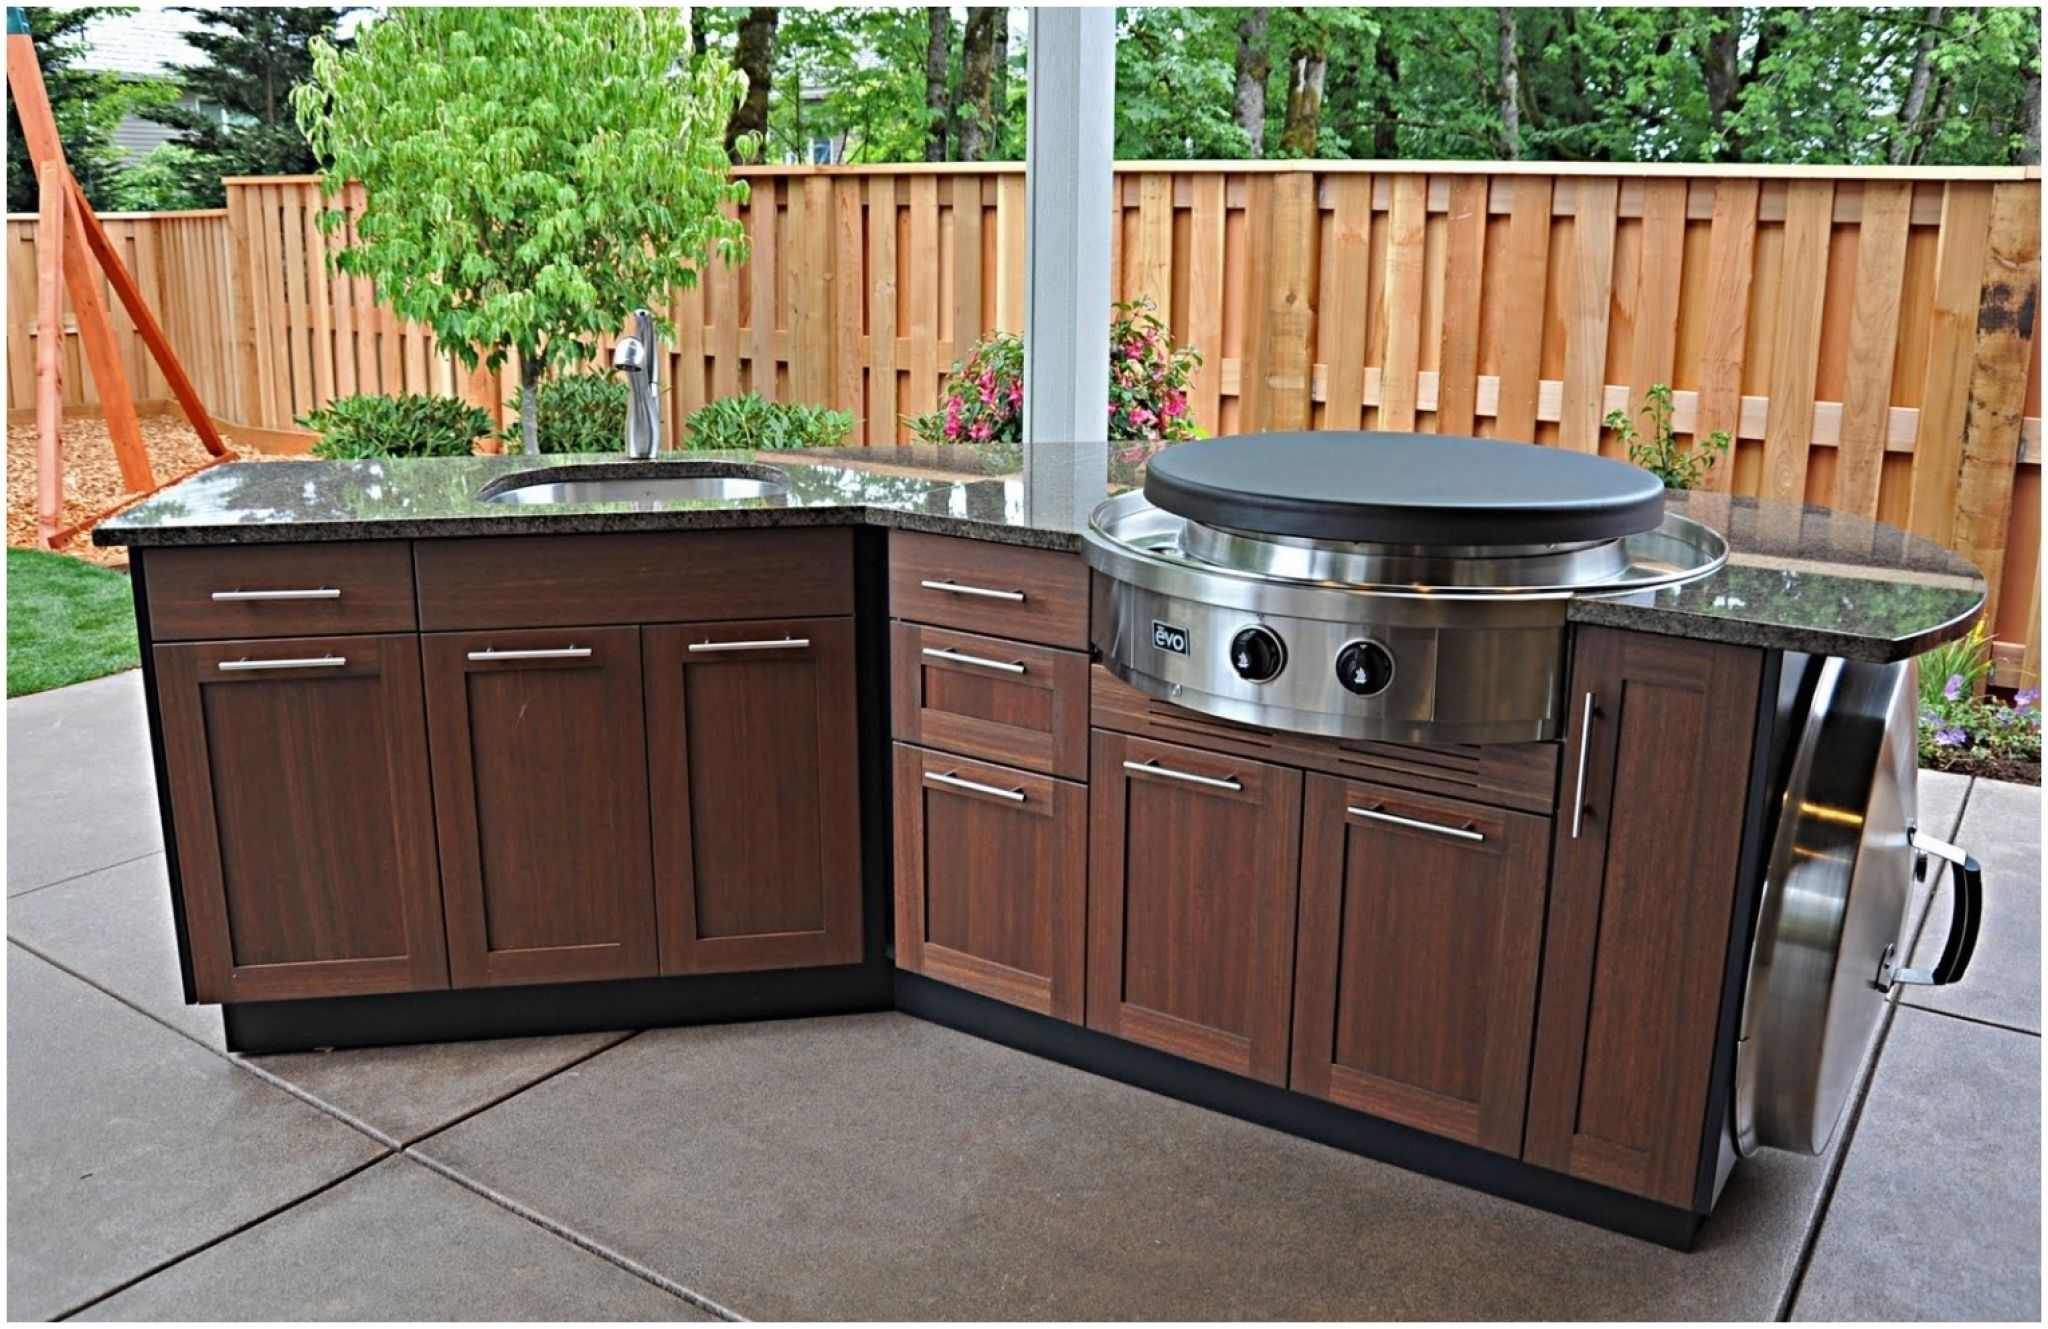 Outdoor Kitchen Cabinet Ideas Shelf Display Check More At